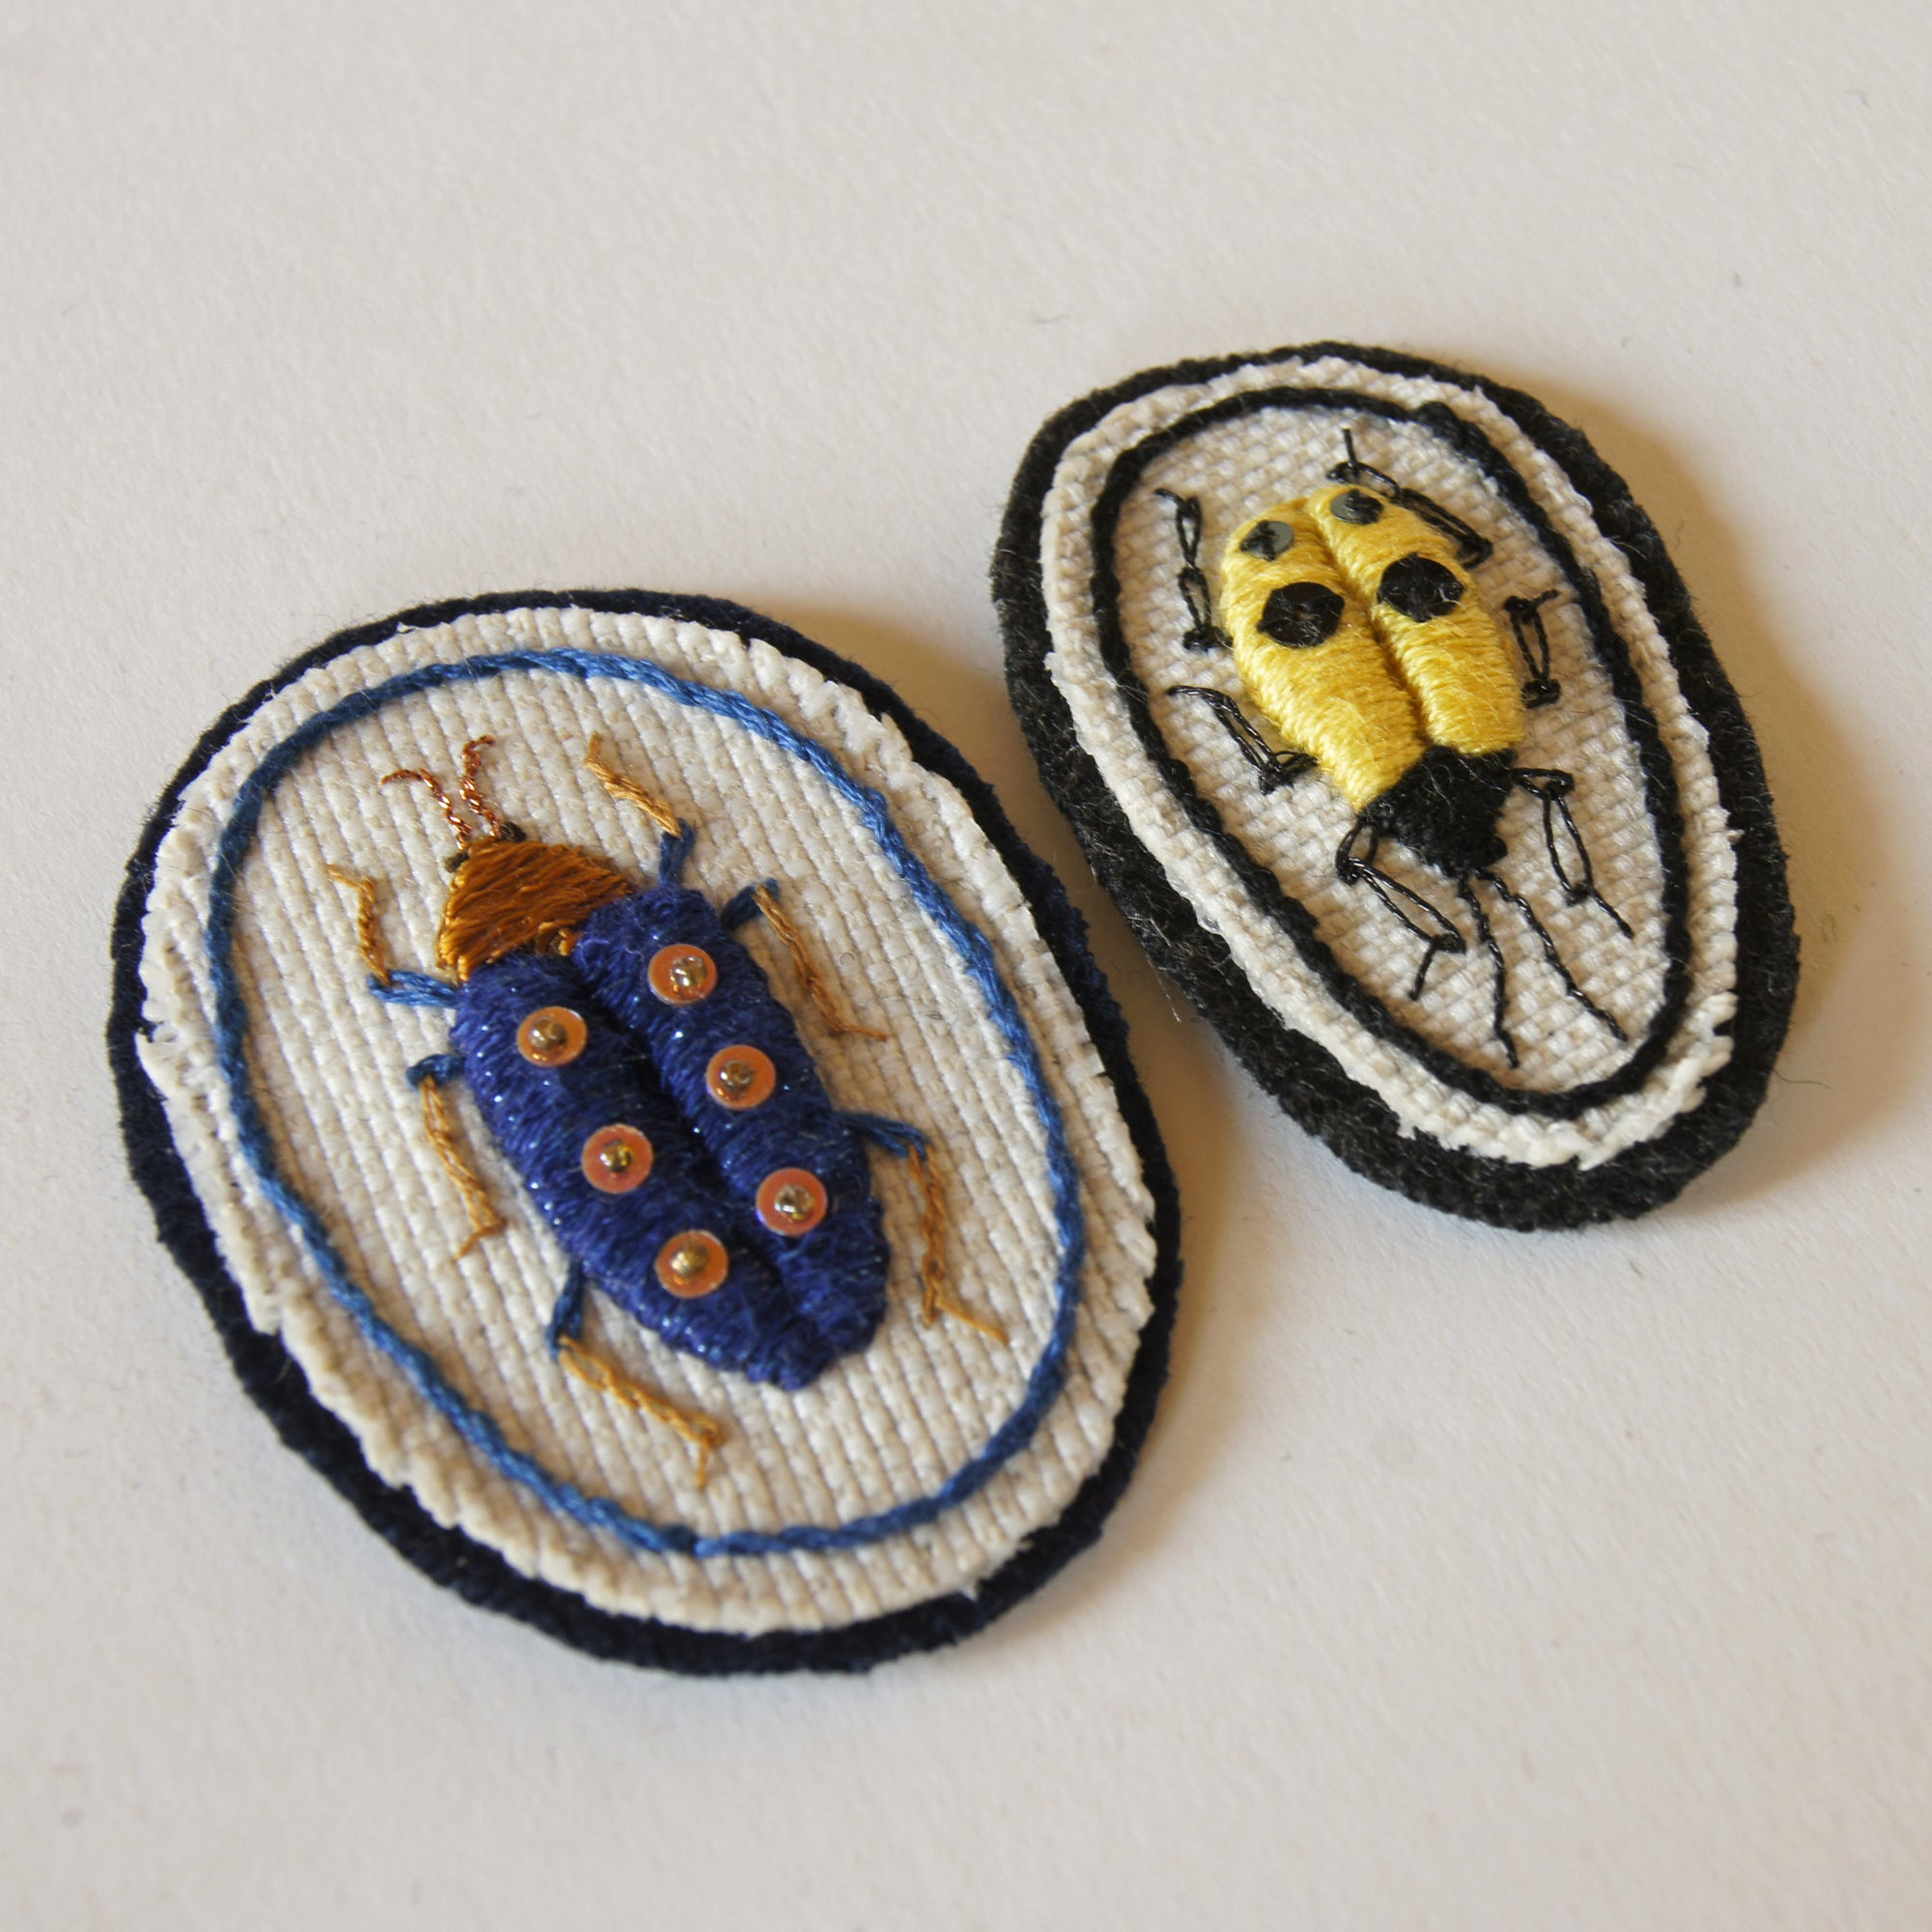 Hand Embroidered Sew On Patches Set of Two Jewel Beetles Buprestidae